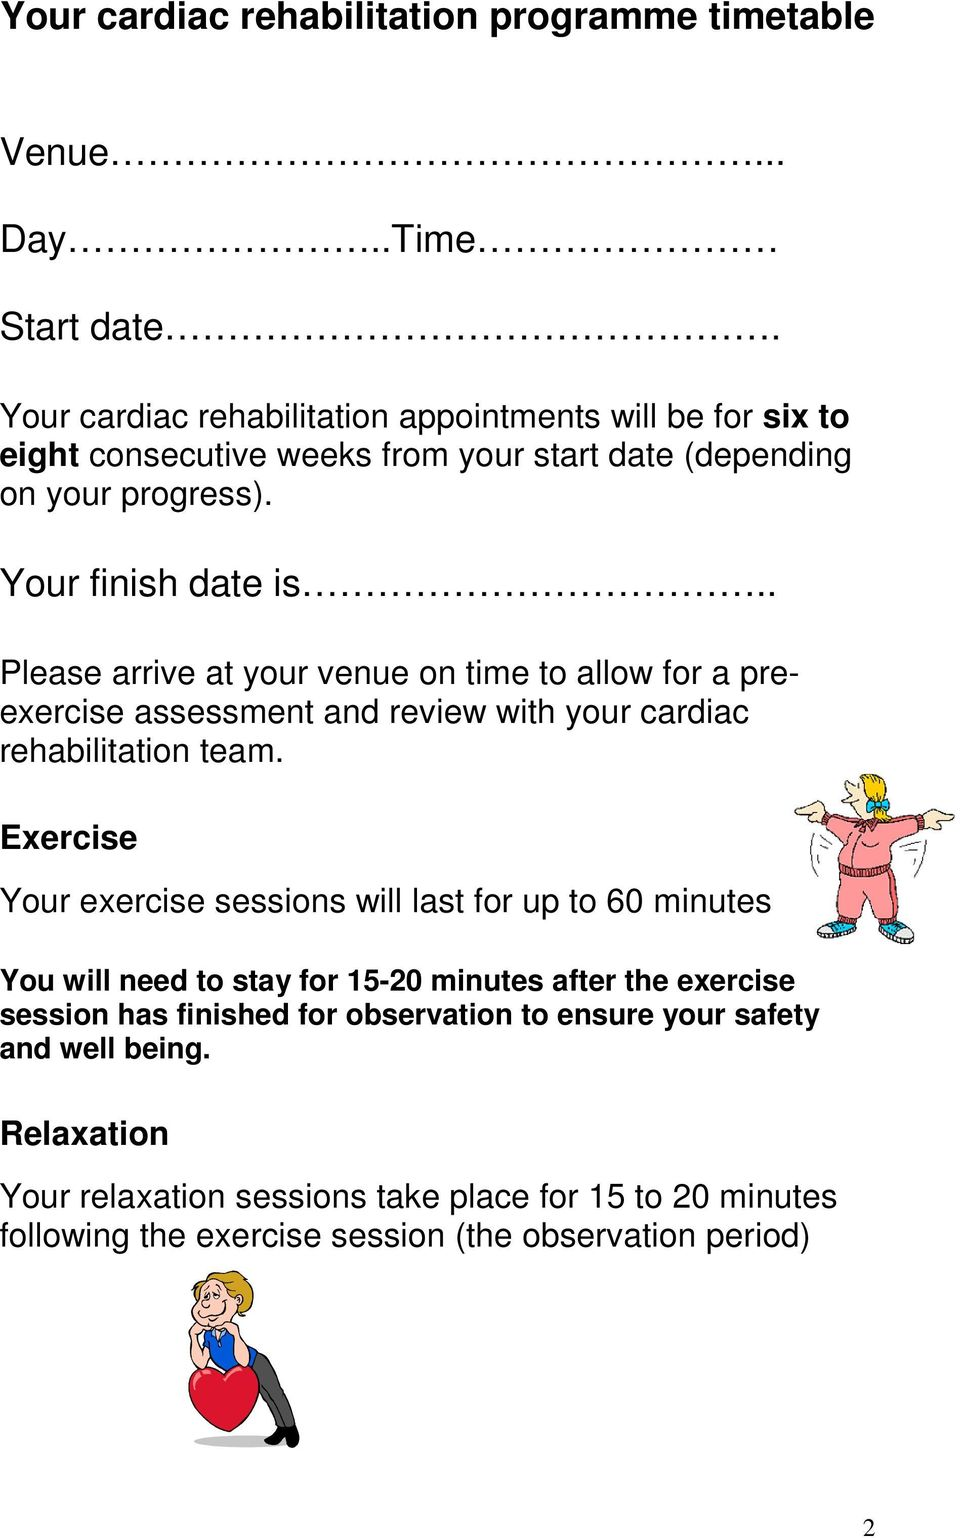 . Please arrive at your venue on time to allow for a preexercise assessment and review with your cardiac rehabilitation team.